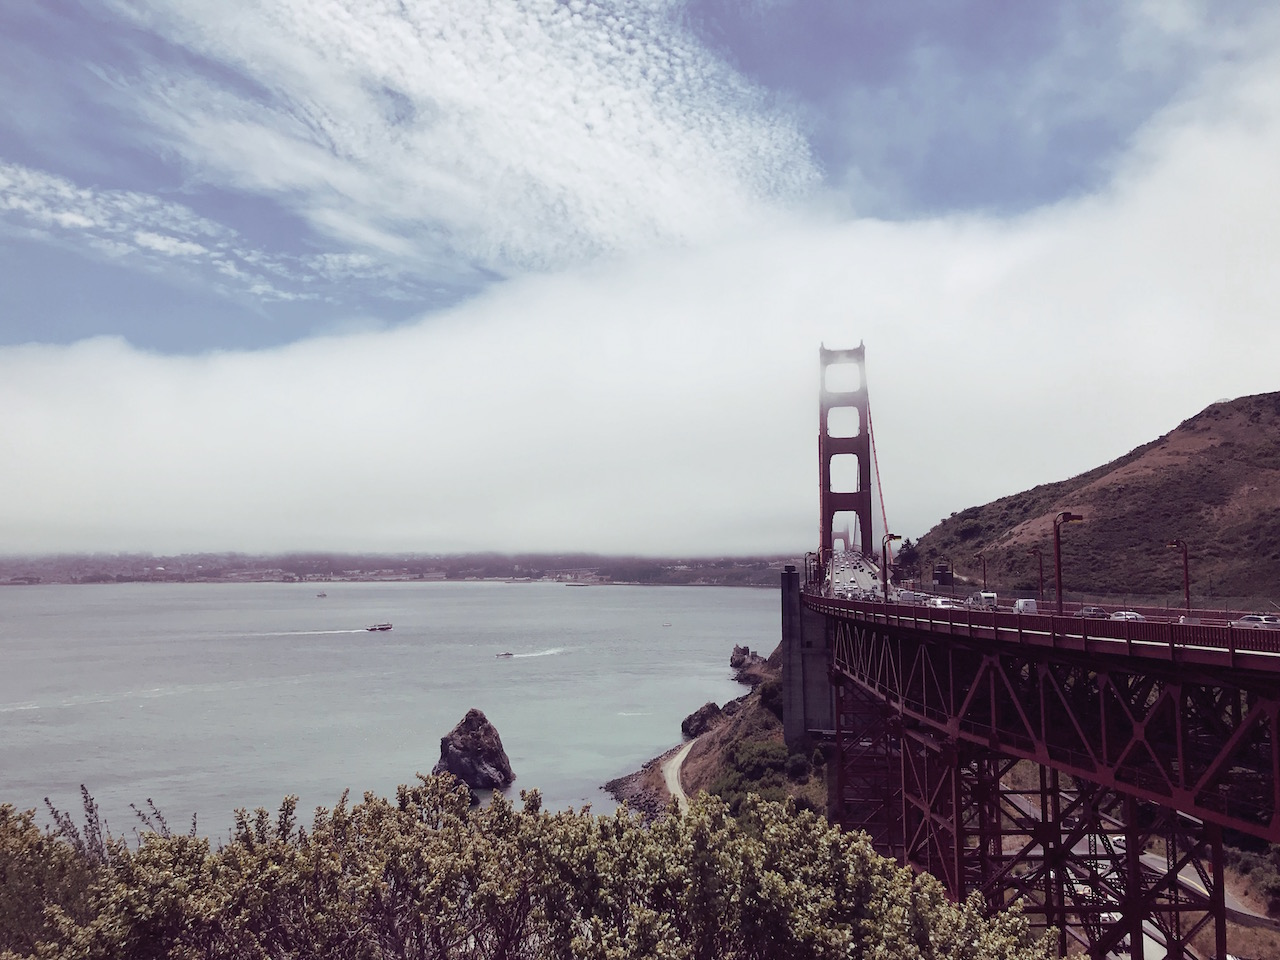 San Francisco Stadt im Nebel Annaway Travel Reiseblog Blog Luxury Travel 10